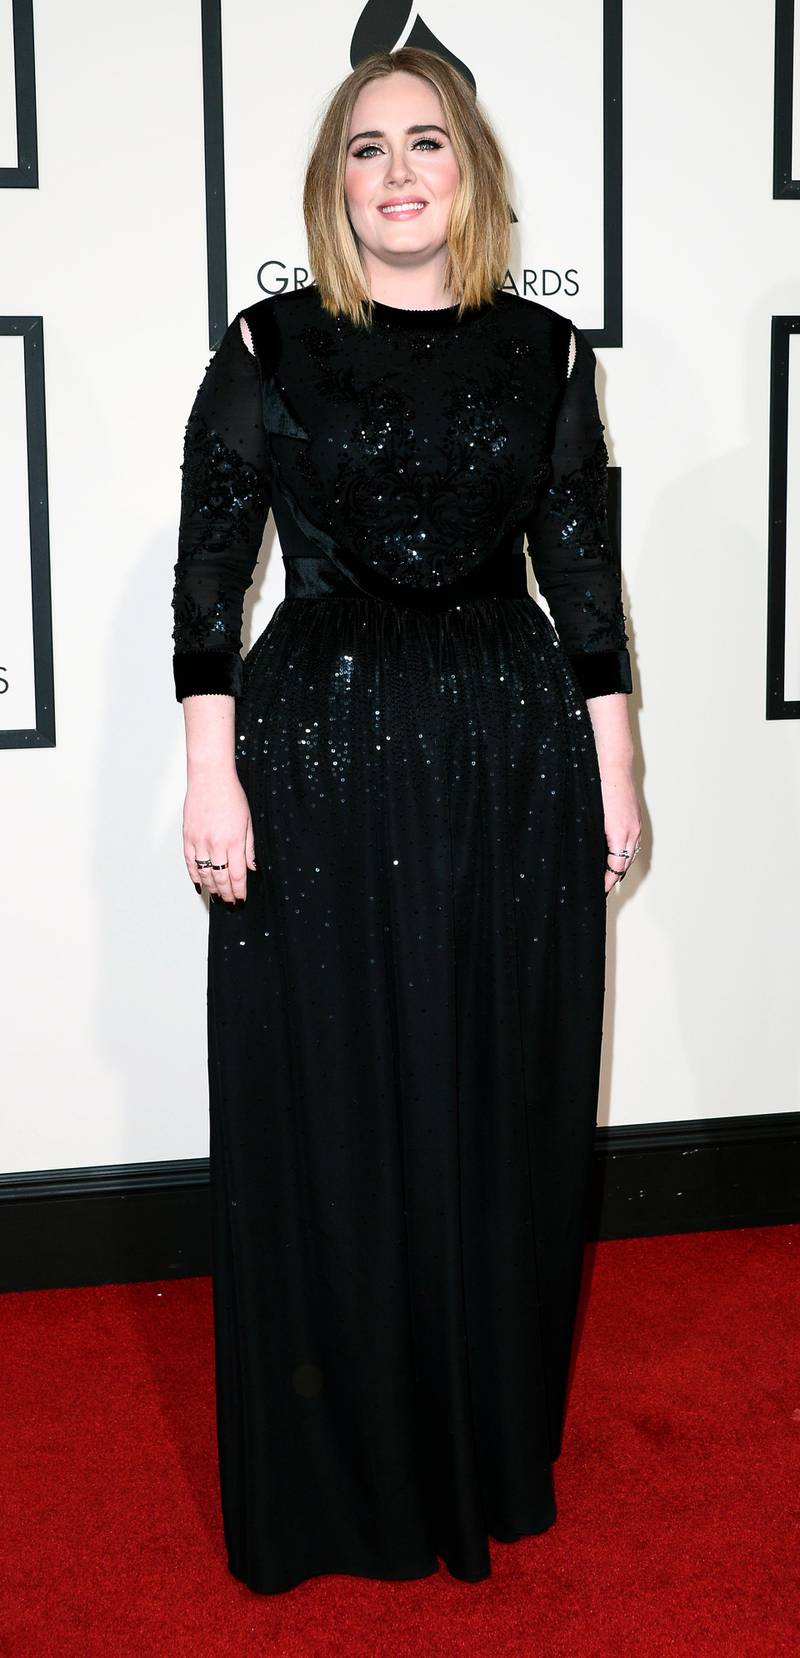 epa05662583 (FILE) A file picture dated 15 February 2016, of British singer Adele arriving for the 58th annual Grammy Awards at the Staples Center in Los Angeles, California, USA. The 2017 Grammy nominees were announced 06 December 2016, with Adele receiving five nominations, including Record of the Year.  EPA/PAUL BUCK